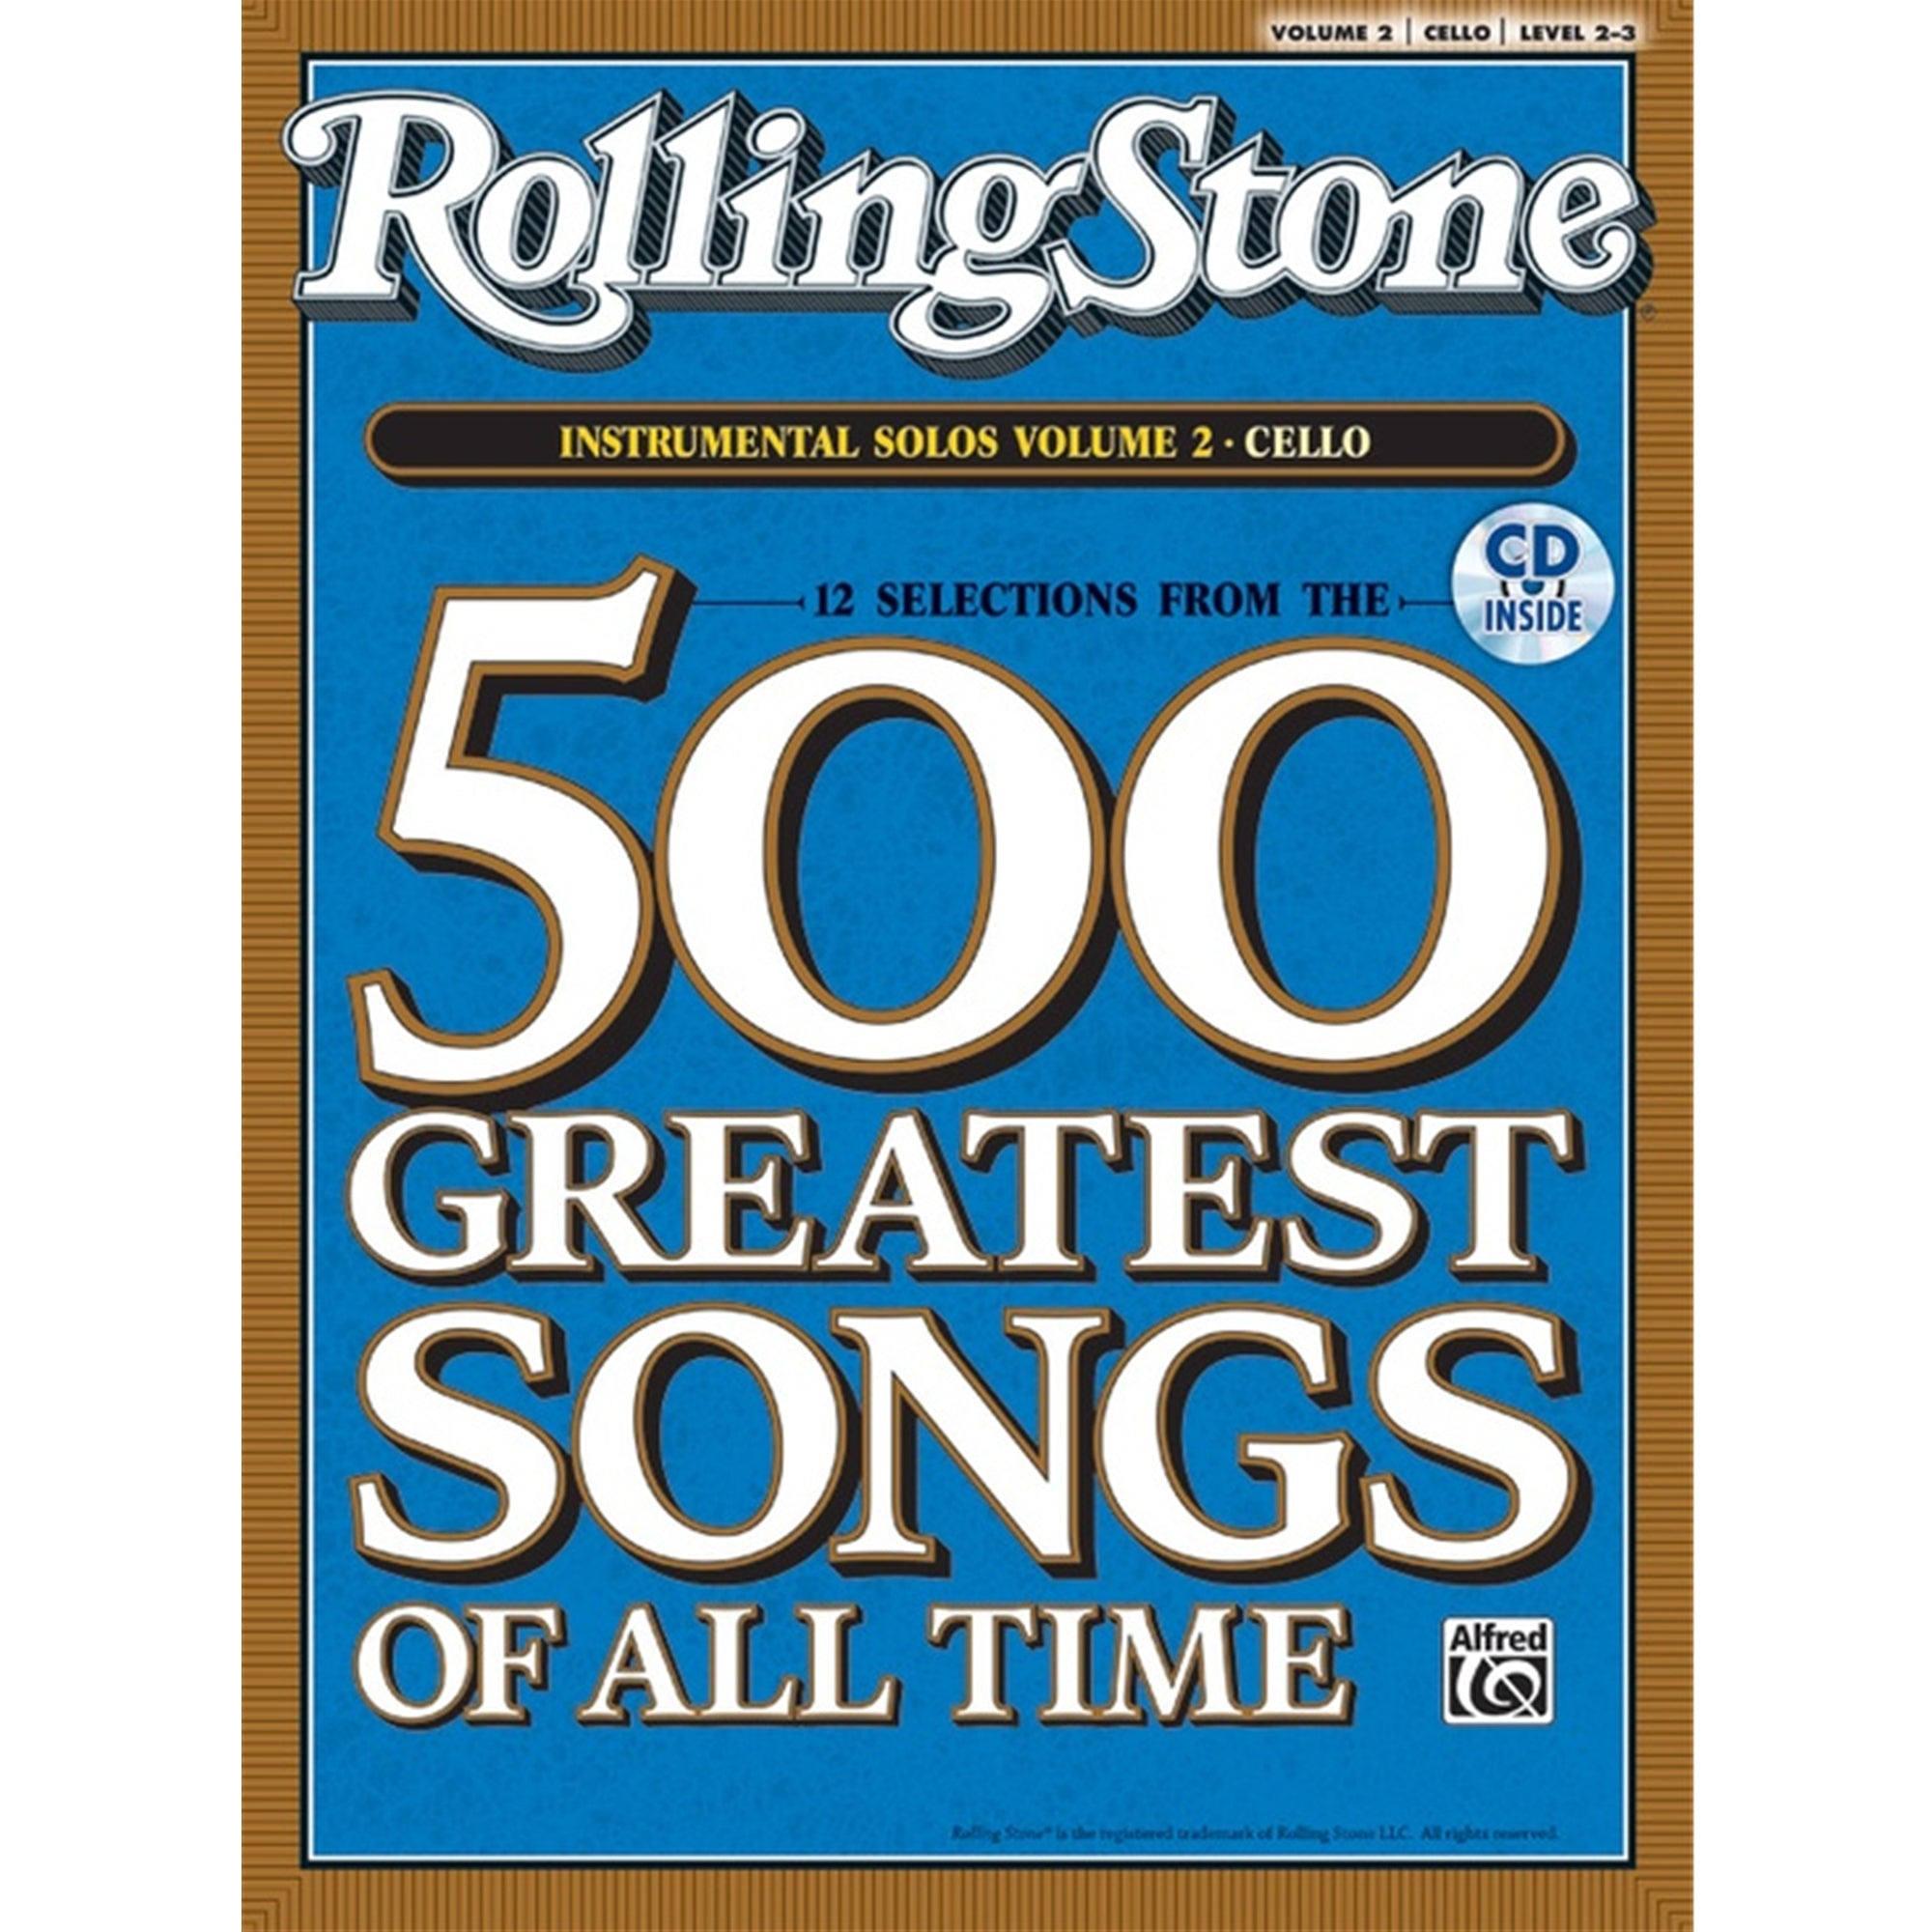 ALFRED 30872 Rolling Stone's 500 Greatest Songs of All Time: Instrumental Solos for Cello Volume 2